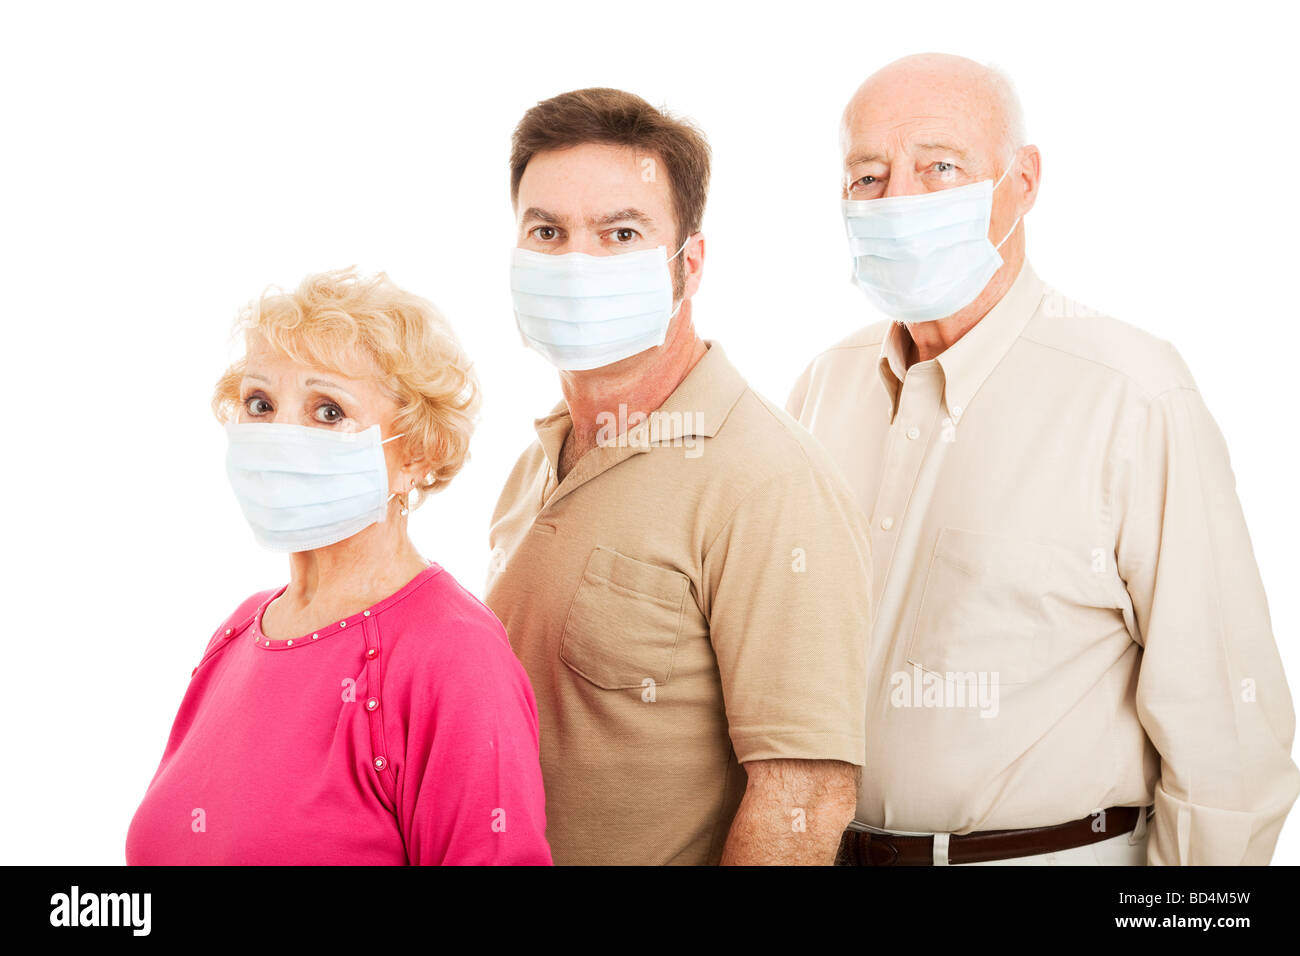 adult surgical mask